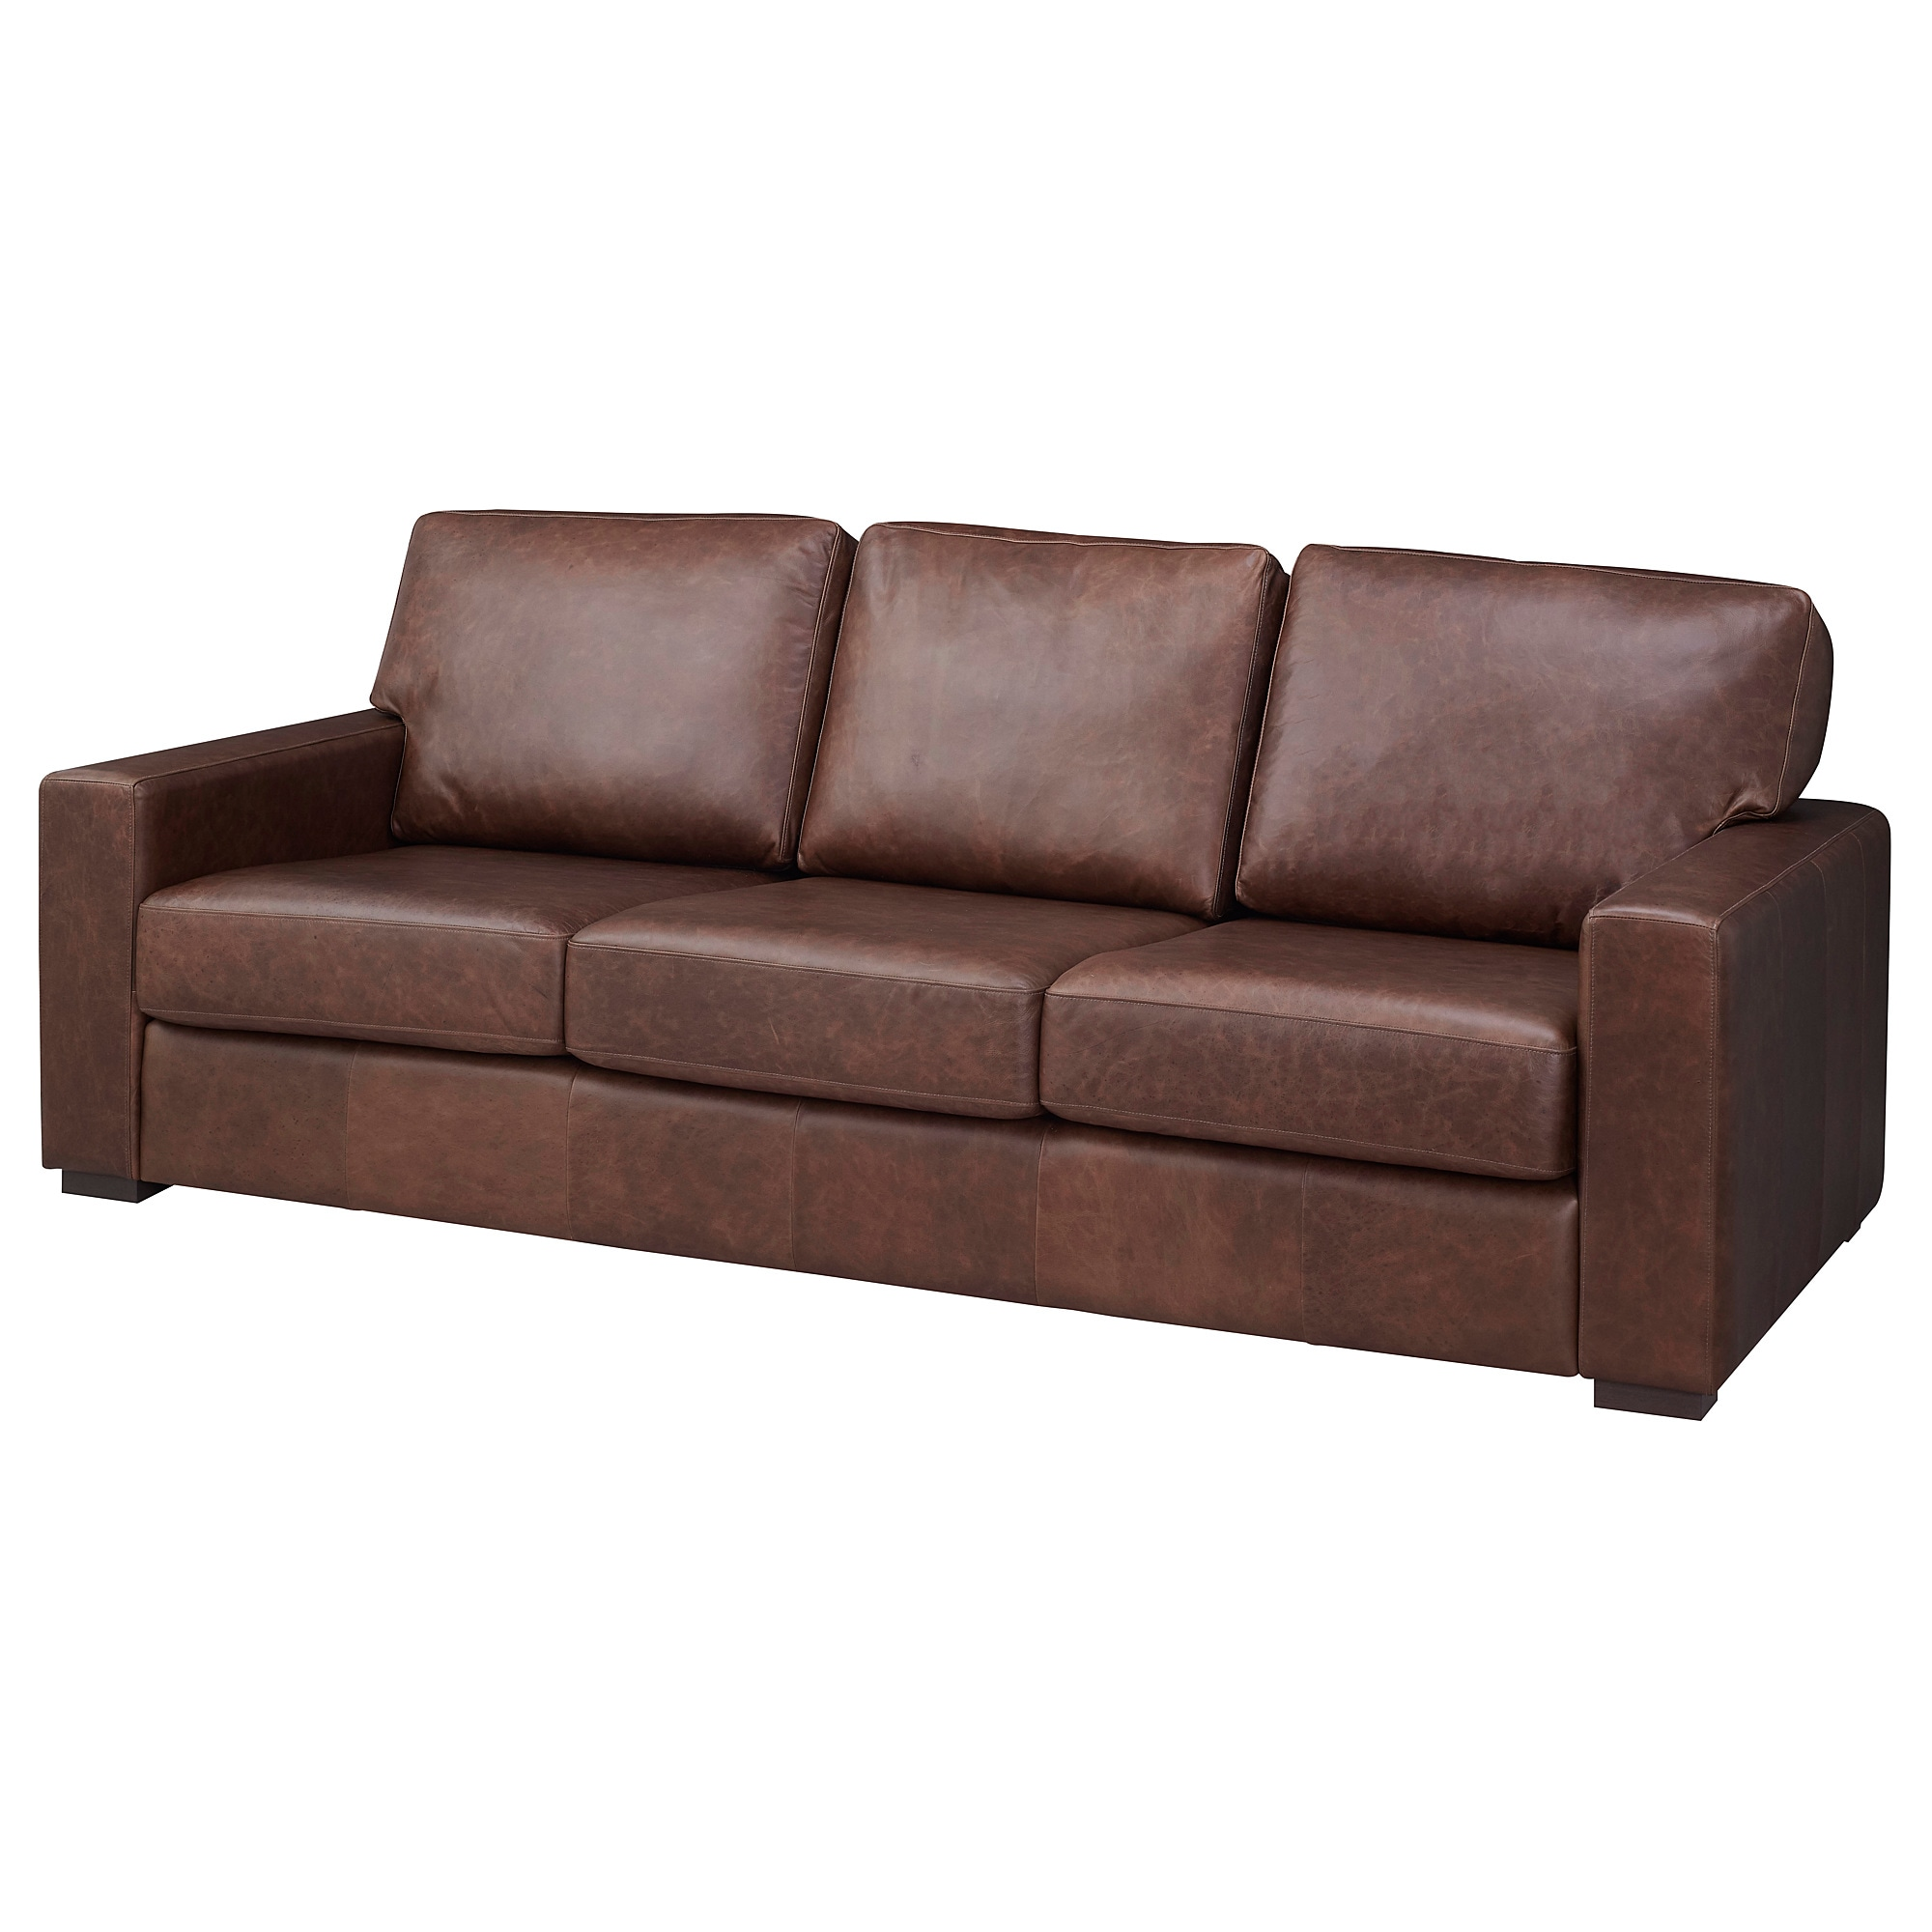 buy leather sofa leather couch leather armchairs online ikea rh ikea com